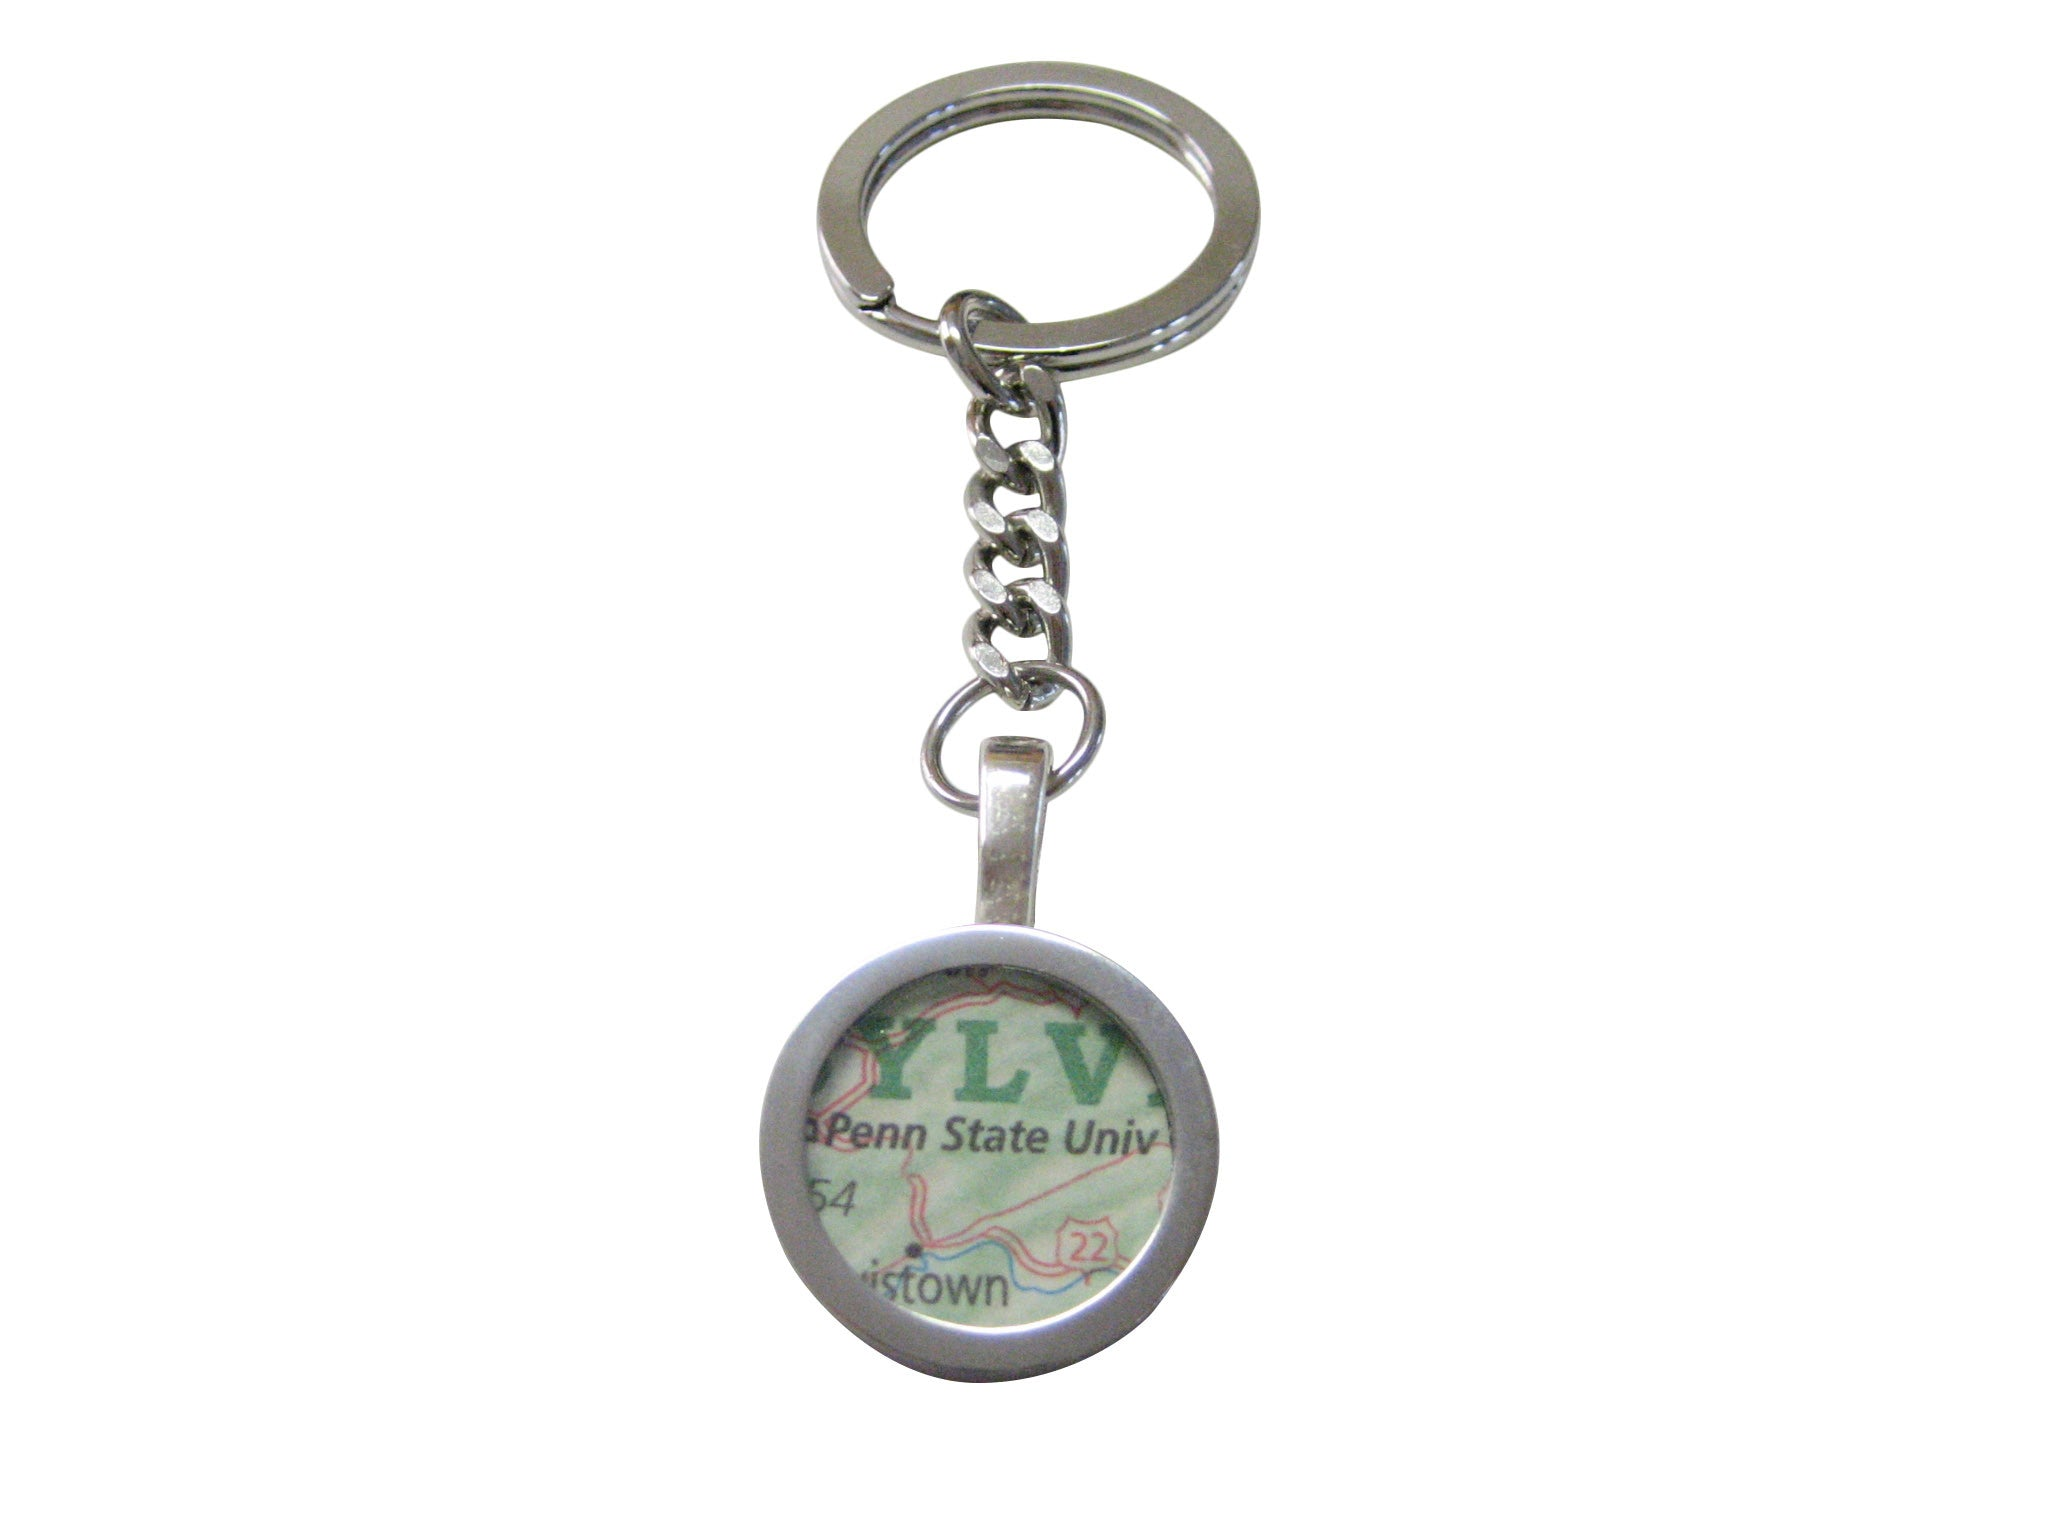 Penn State University Map Pendant Keychain